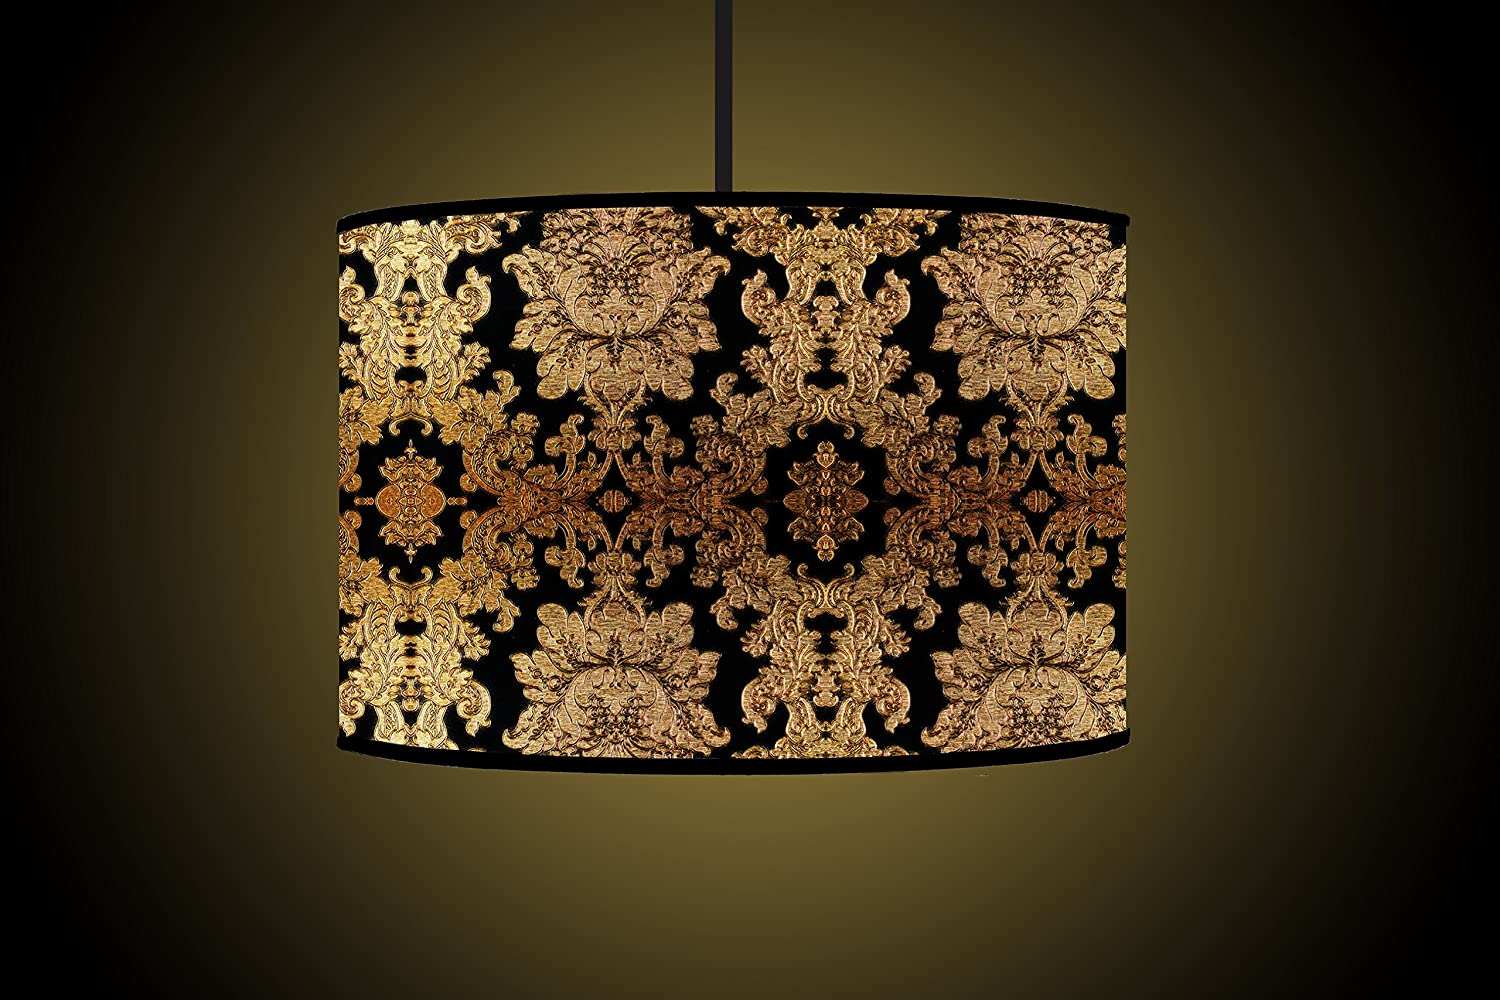 Superior 30CM Black Gold Drum Lampshade Handmade Printed Fabric Floor Lamp Shade  Ceiling Light Lampshade: Amazon.co.uk: Lighting